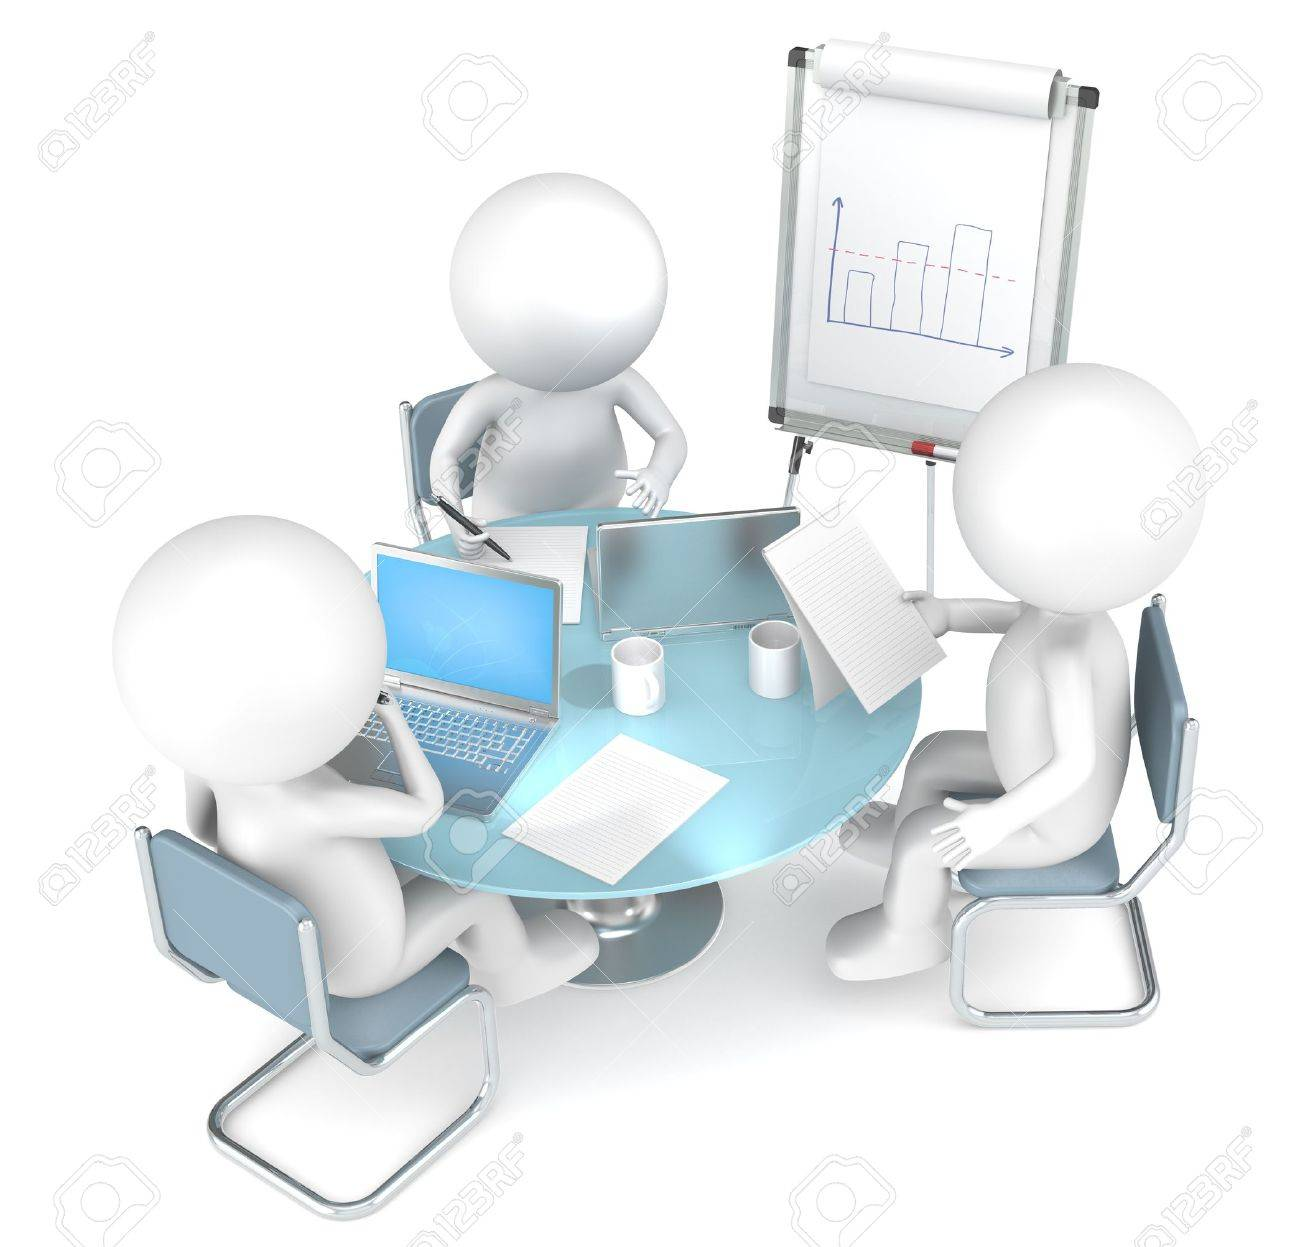 3D little human characters X3 working together. Business People series. Stock Photo - 13773499